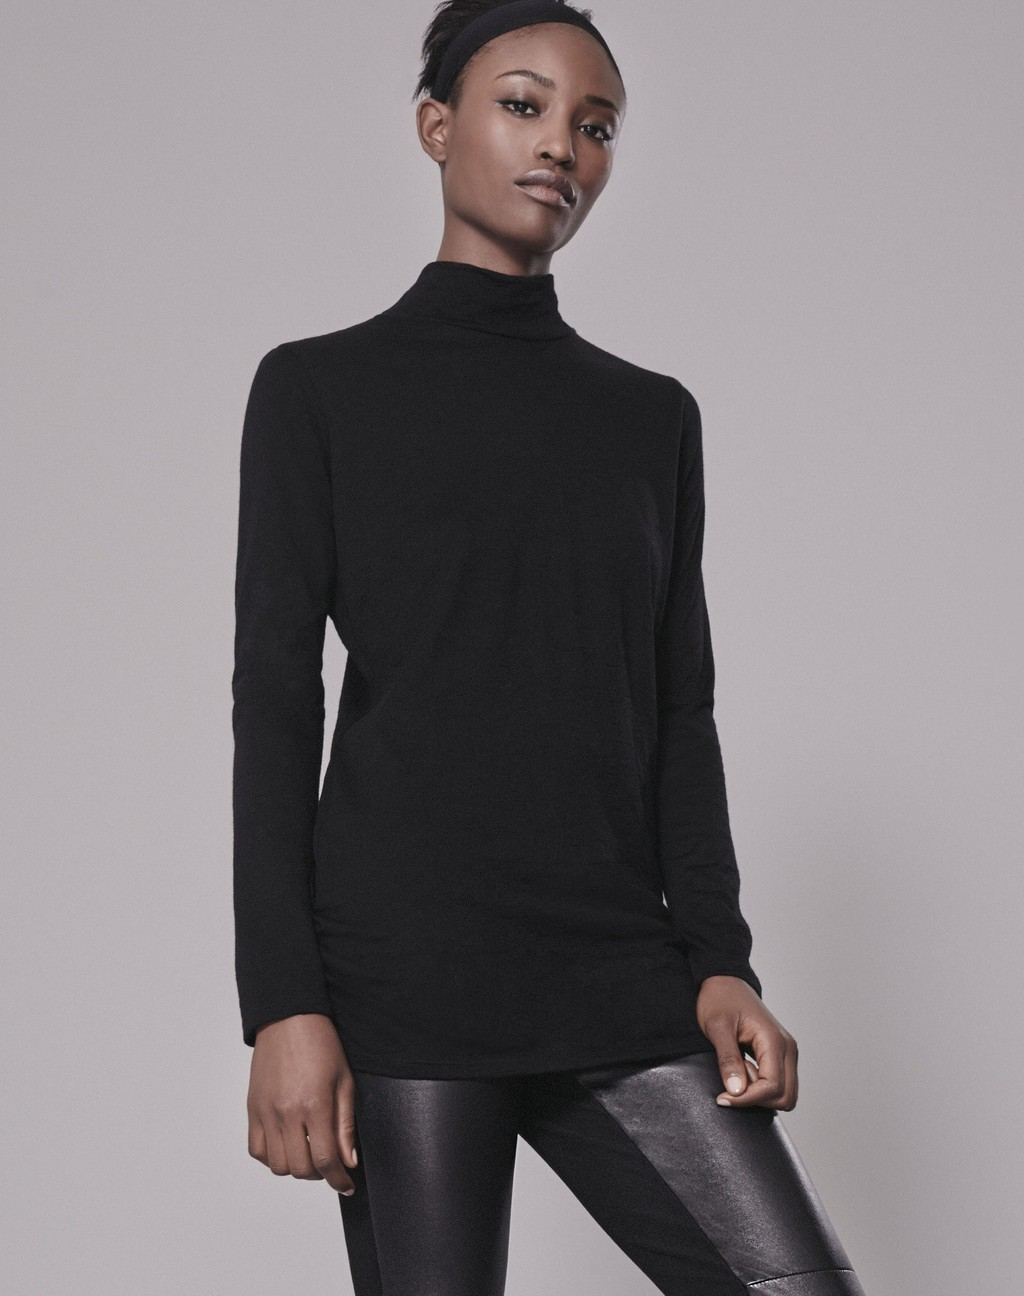 Luxe Polo Neck Top Black - pattern: plain; neckline: roll neck; predominant colour: black; occasions: casual; length: standard; style: top; fibres: wool - 100%; fit: body skimming; sleeve length: long sleeve; sleeve style: standard; texture group: knits/crochet; pattern type: fabric; wardrobe: basic; season: a/w 2016